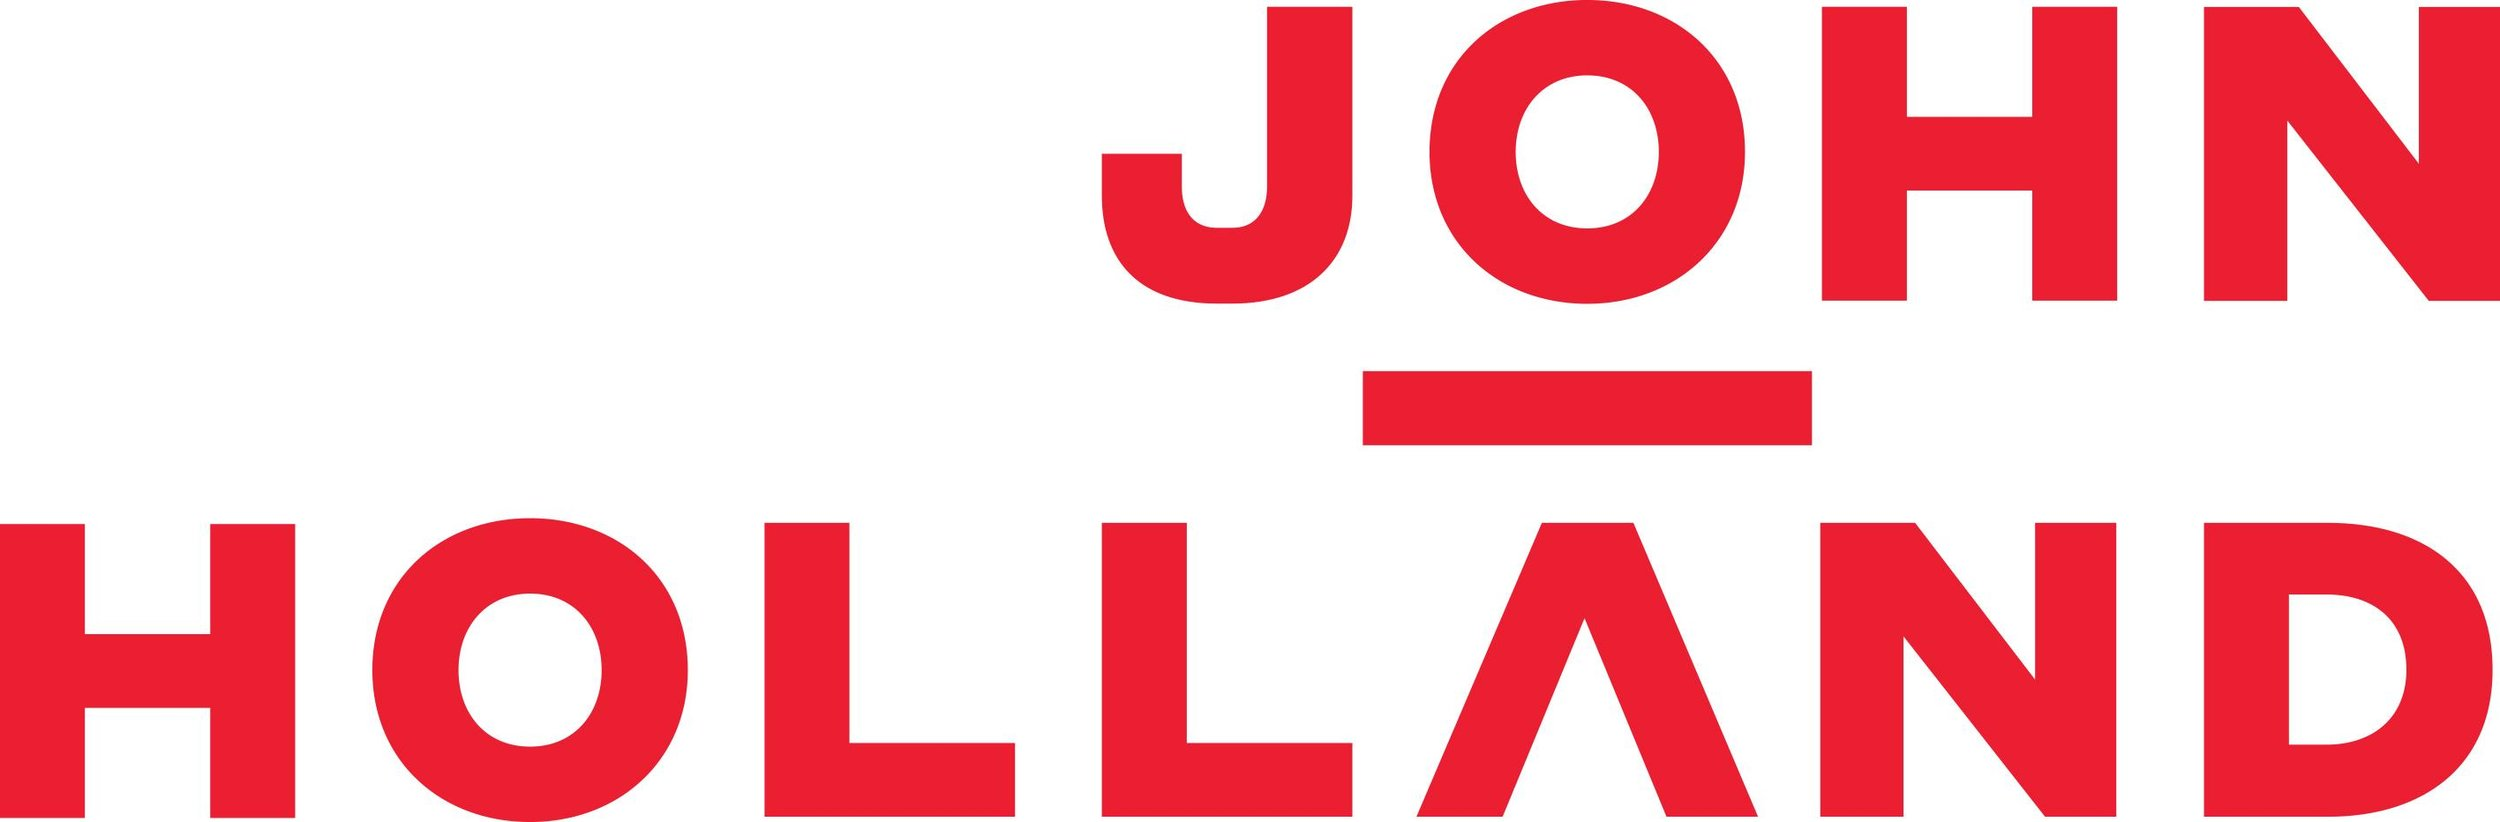 JHG_JohnHollandLogo.jpeg